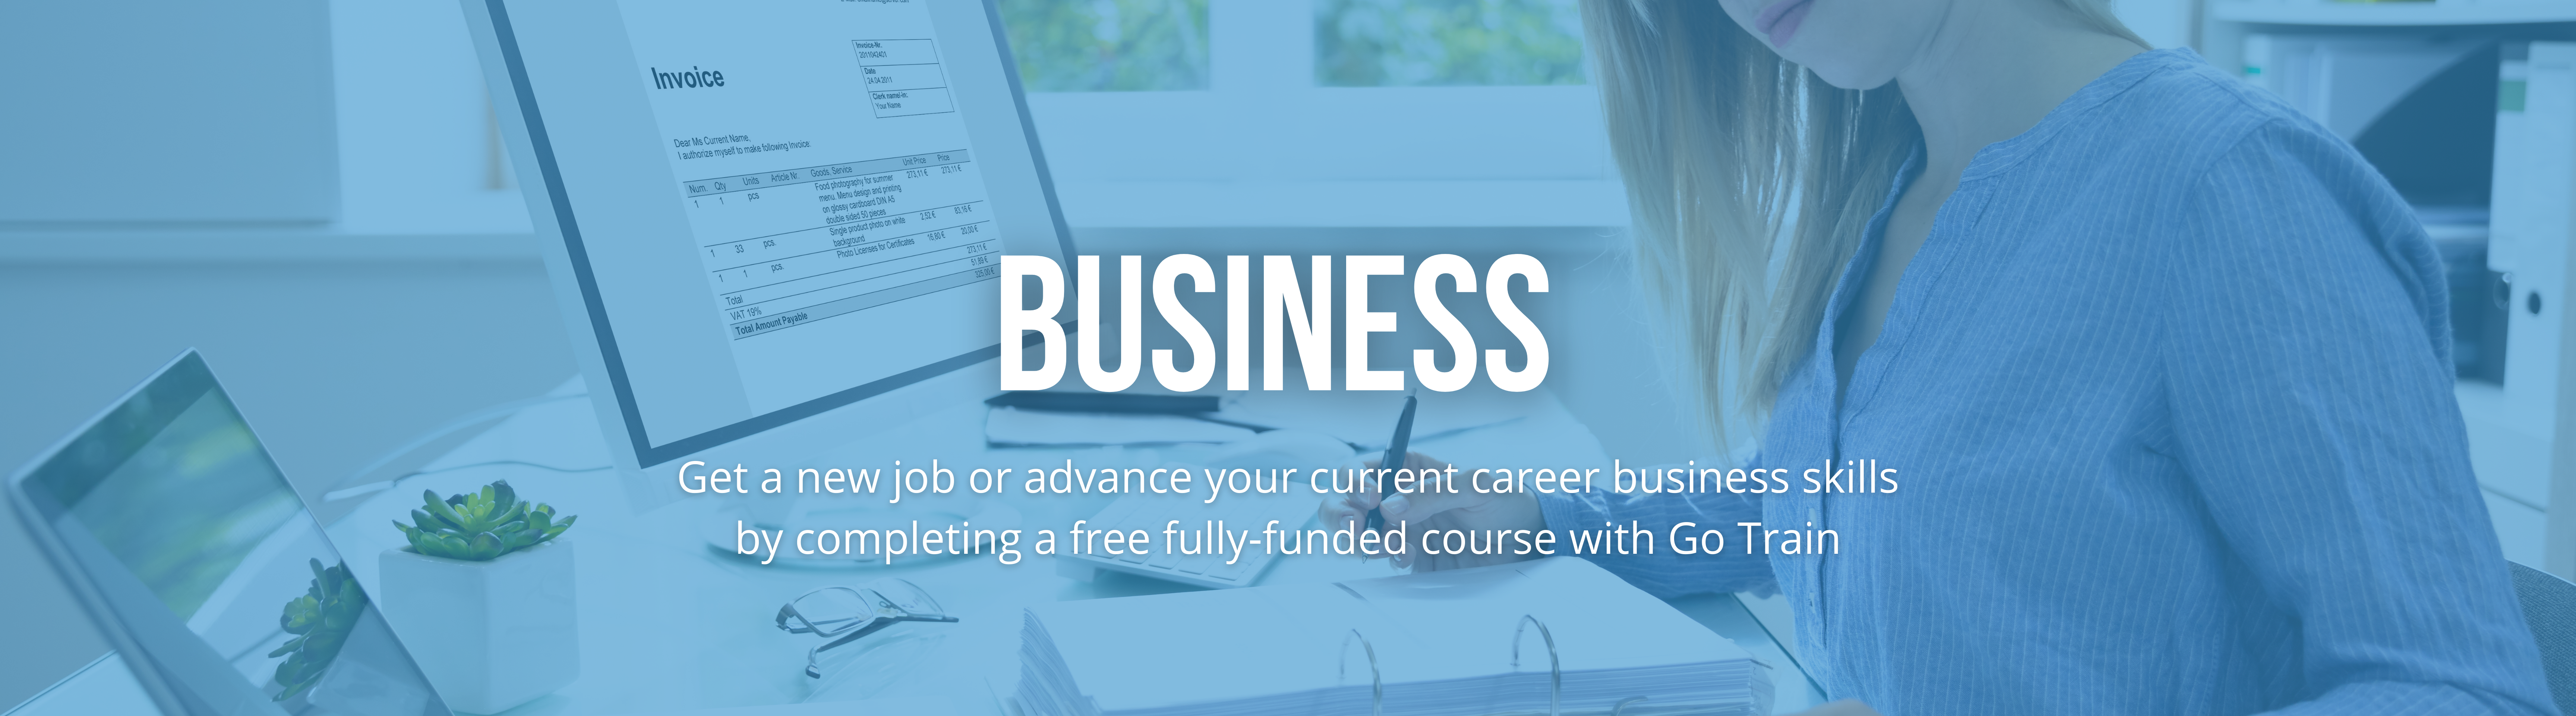 Free Business Courses